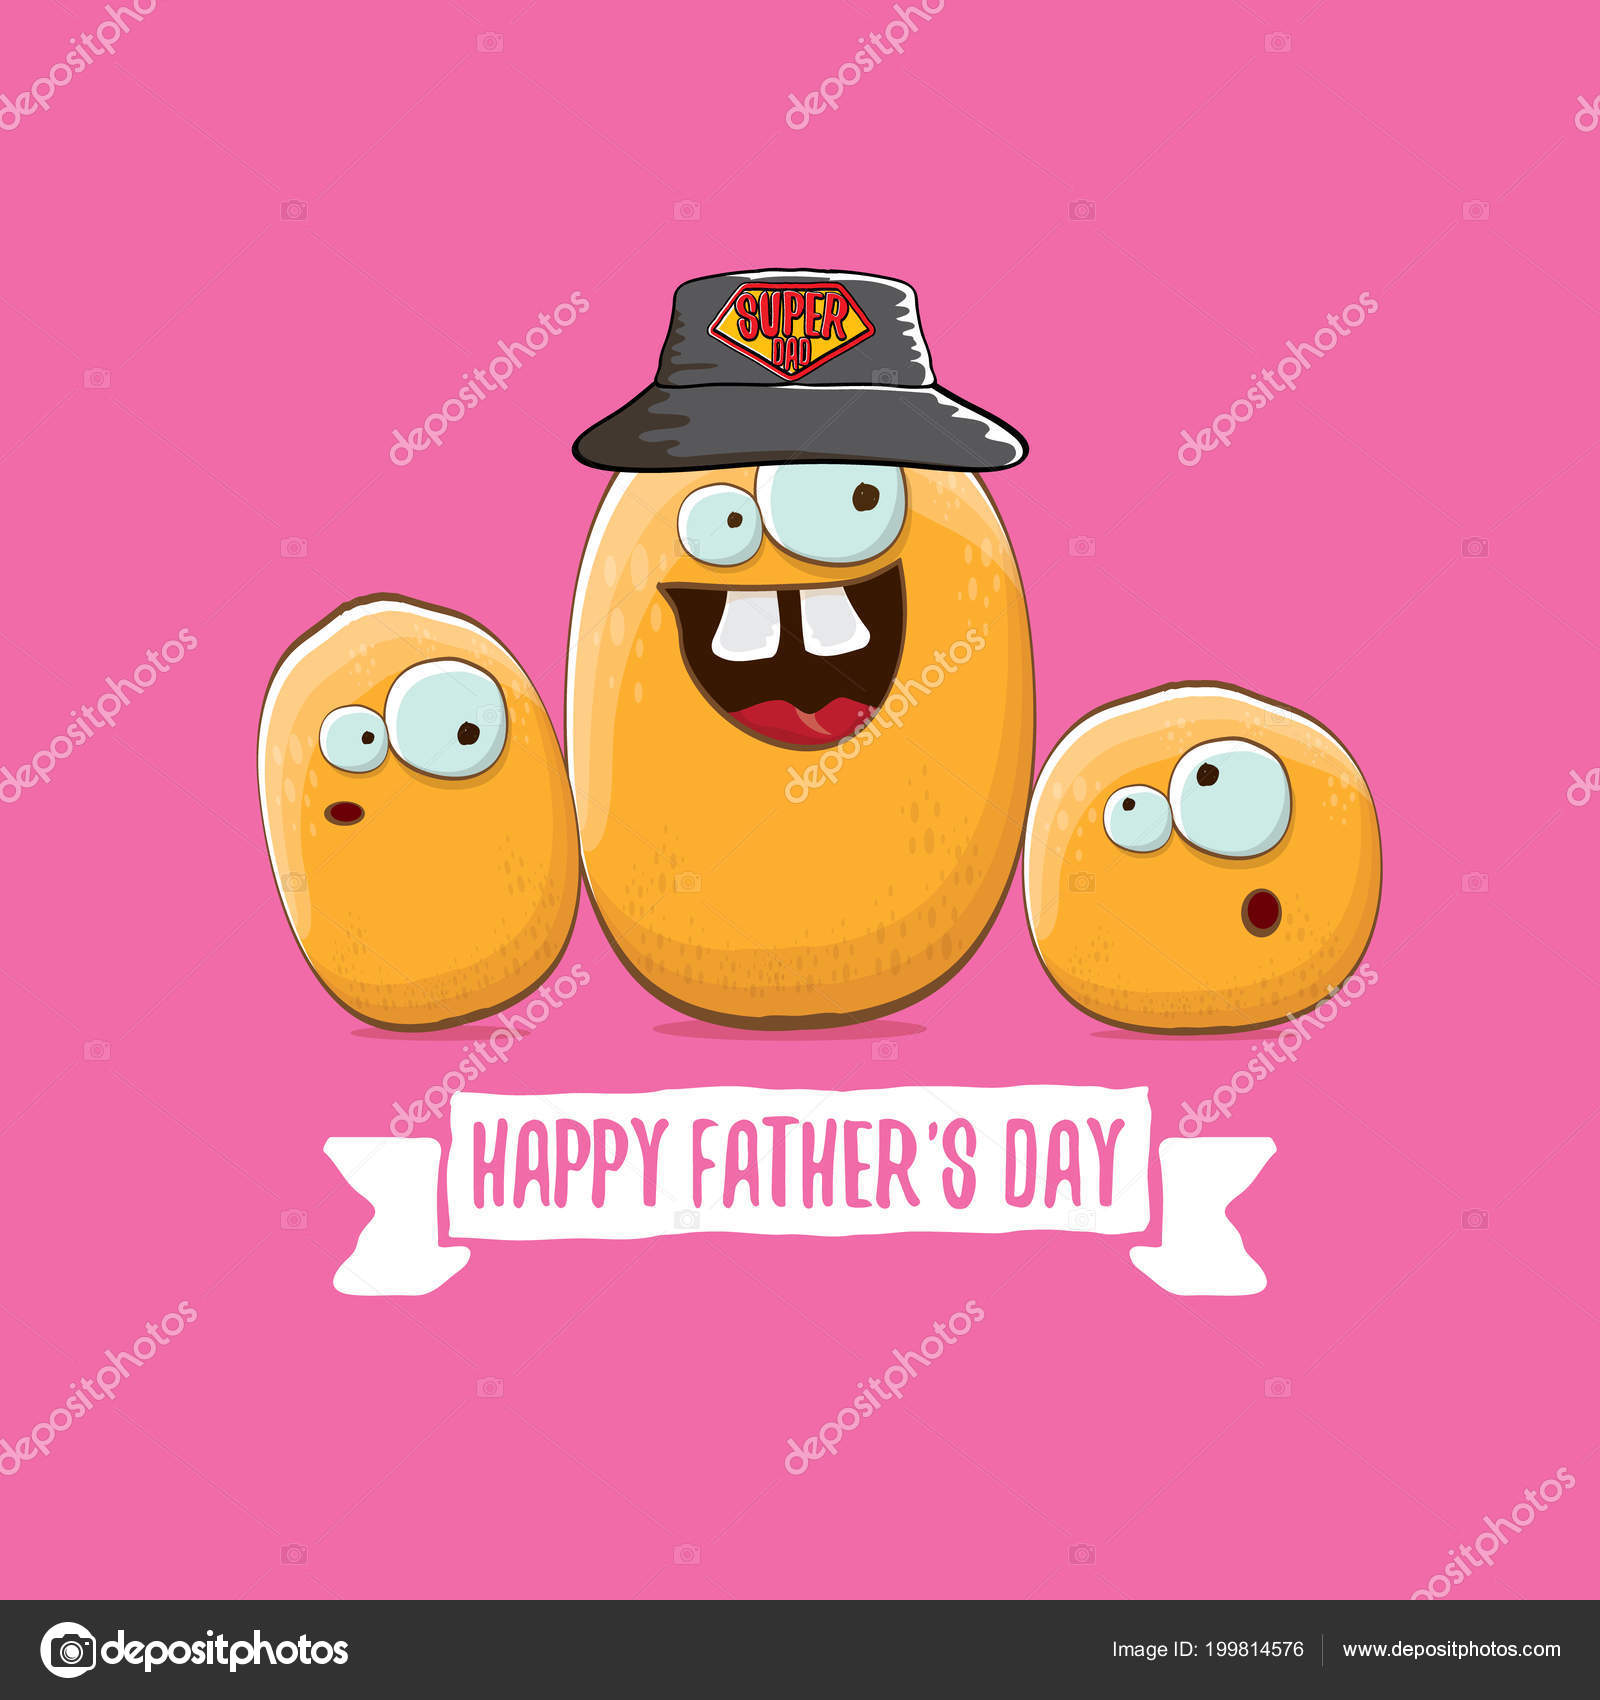 Happy fathers day greeting card with cartoon father potato and kids happy fathers day greeting card with cartoon father potato and kids fathers day vector label or icon isolated on pink background zm1ter vektr m4hsunfo